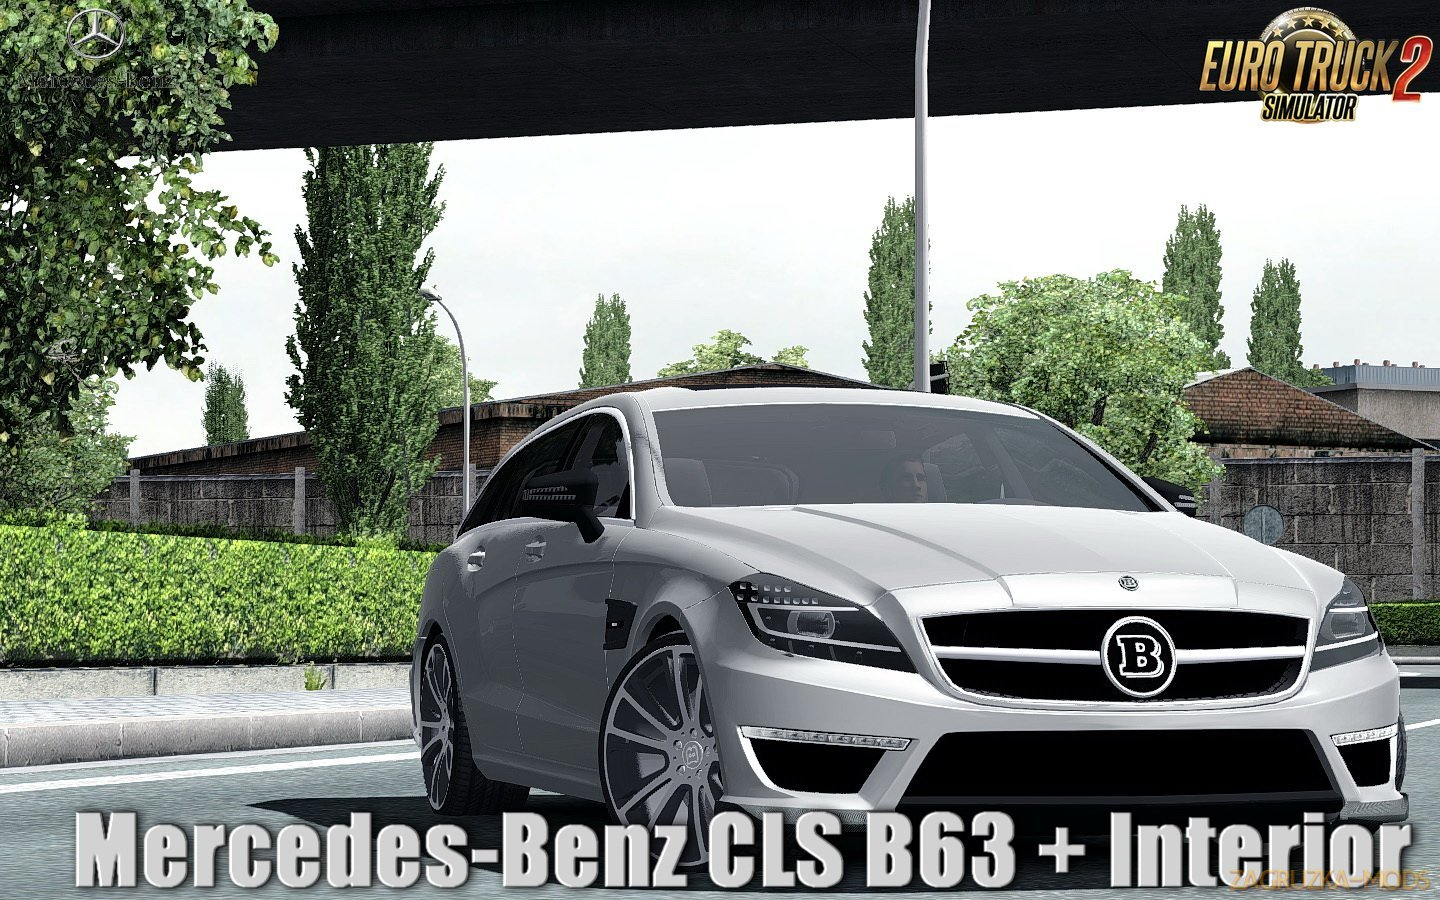 Mercedes-Benz CLS B63 + Interior v1.0 (1.31.x) for ETS 2